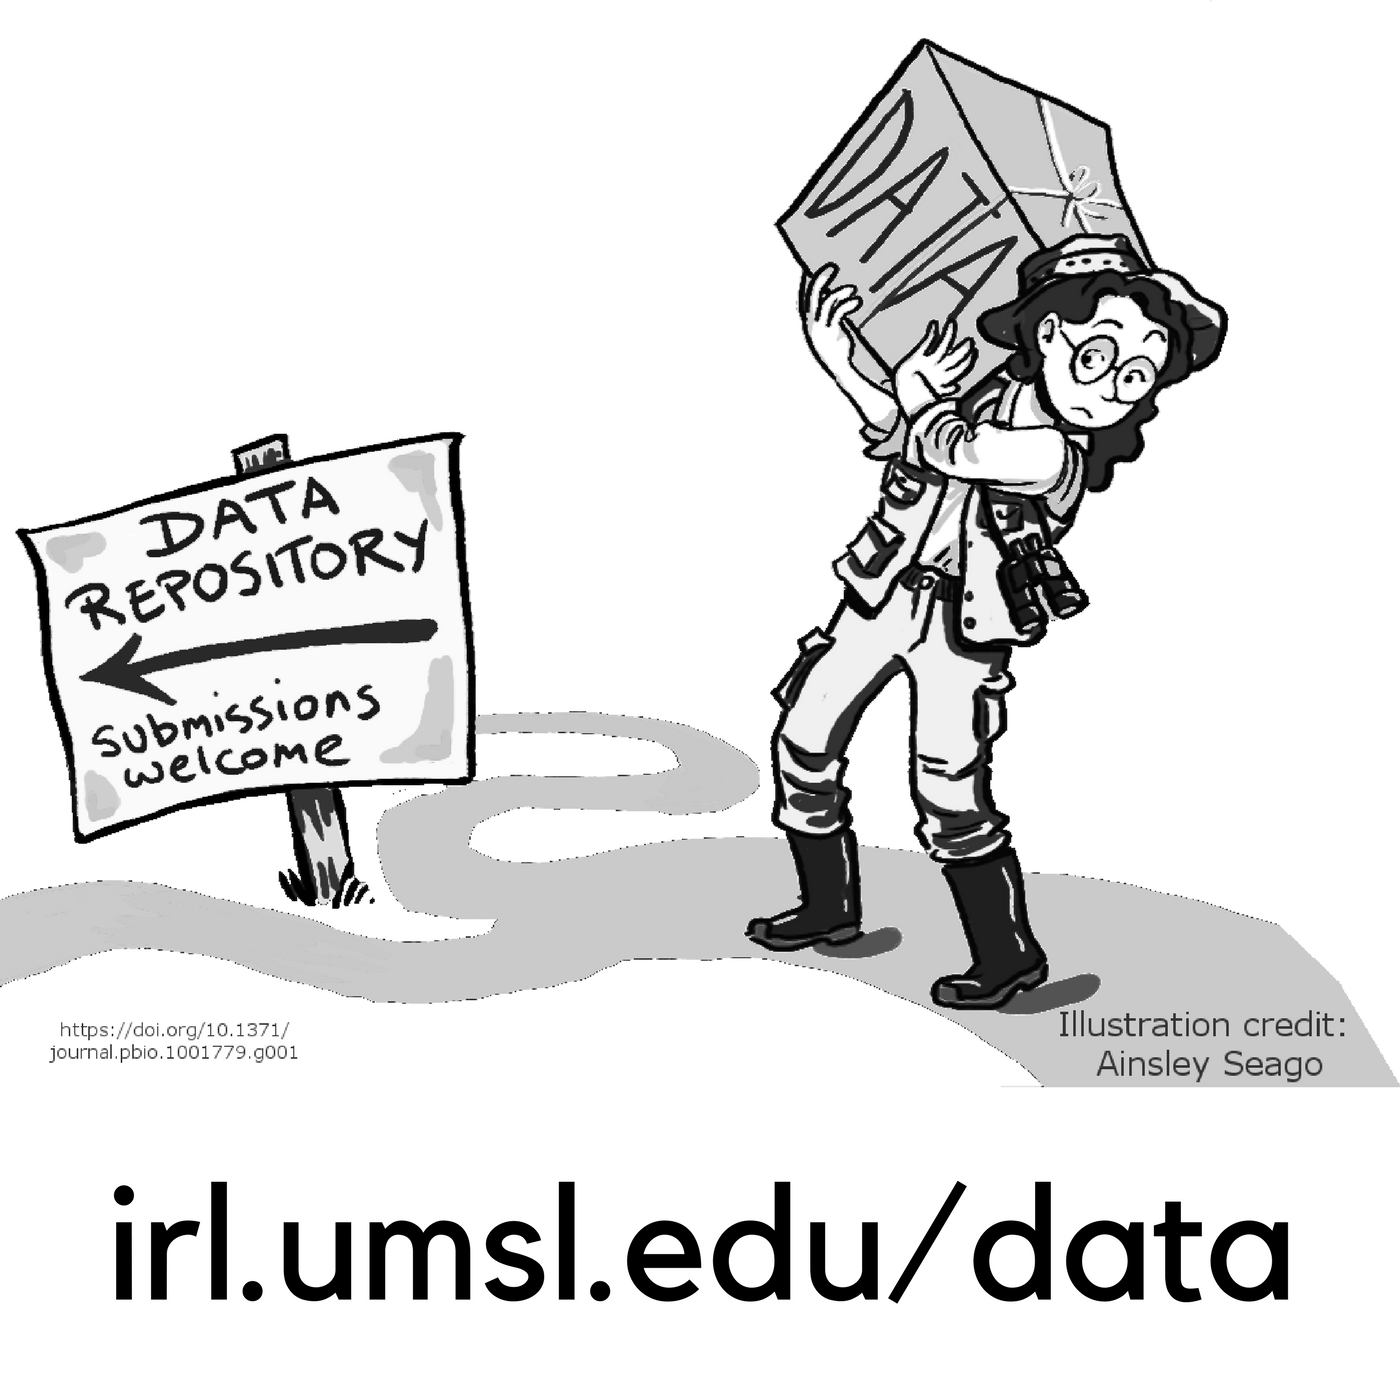 irl.umsl.edu/data Data Repository Submissions